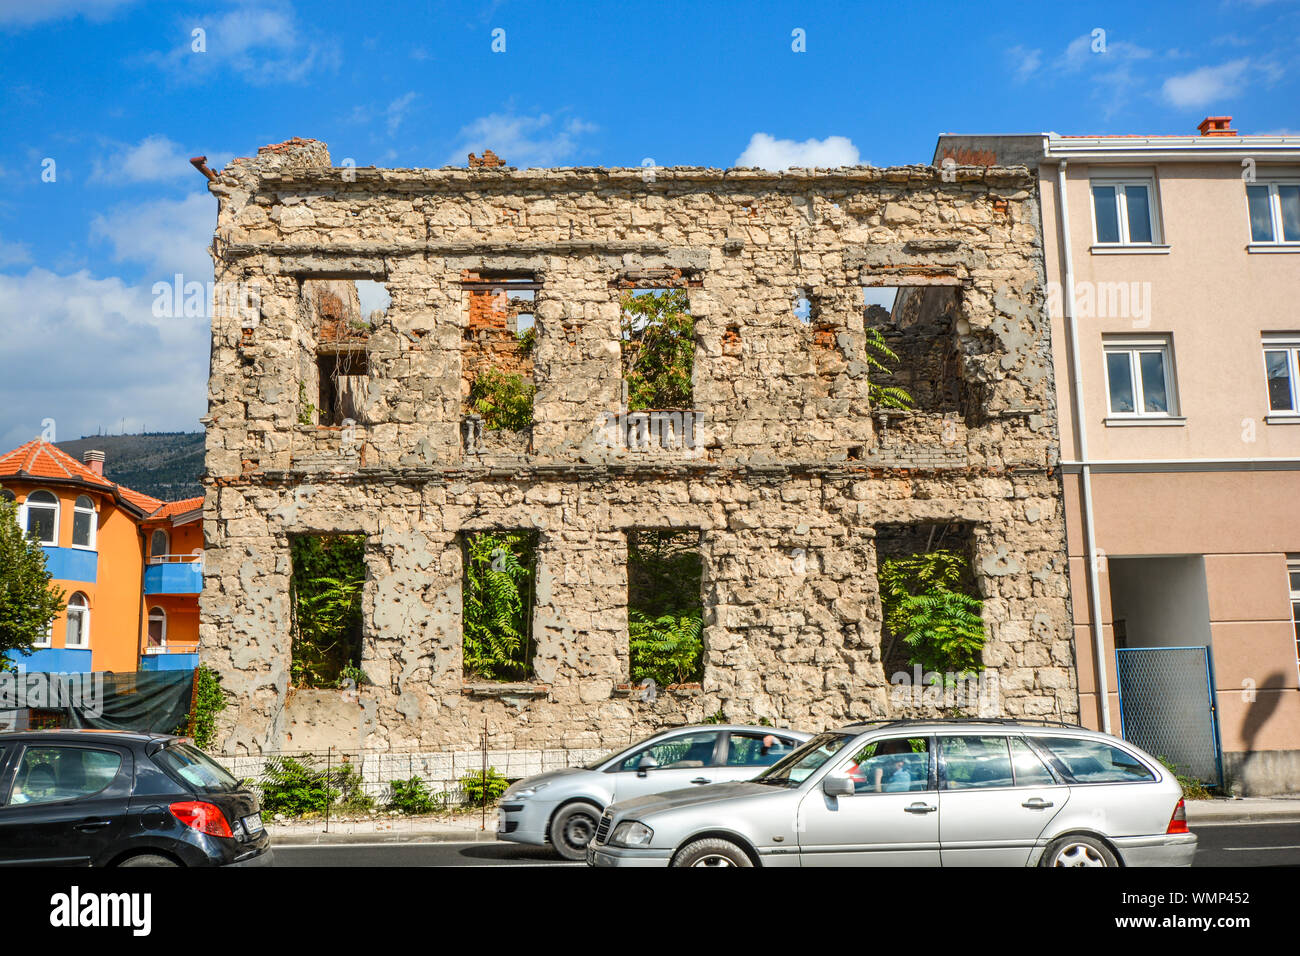 A building lies abandoned after being destroyed in the Balkans war in the town of Mostar, Bosnia and Herzegovina Stock Photo